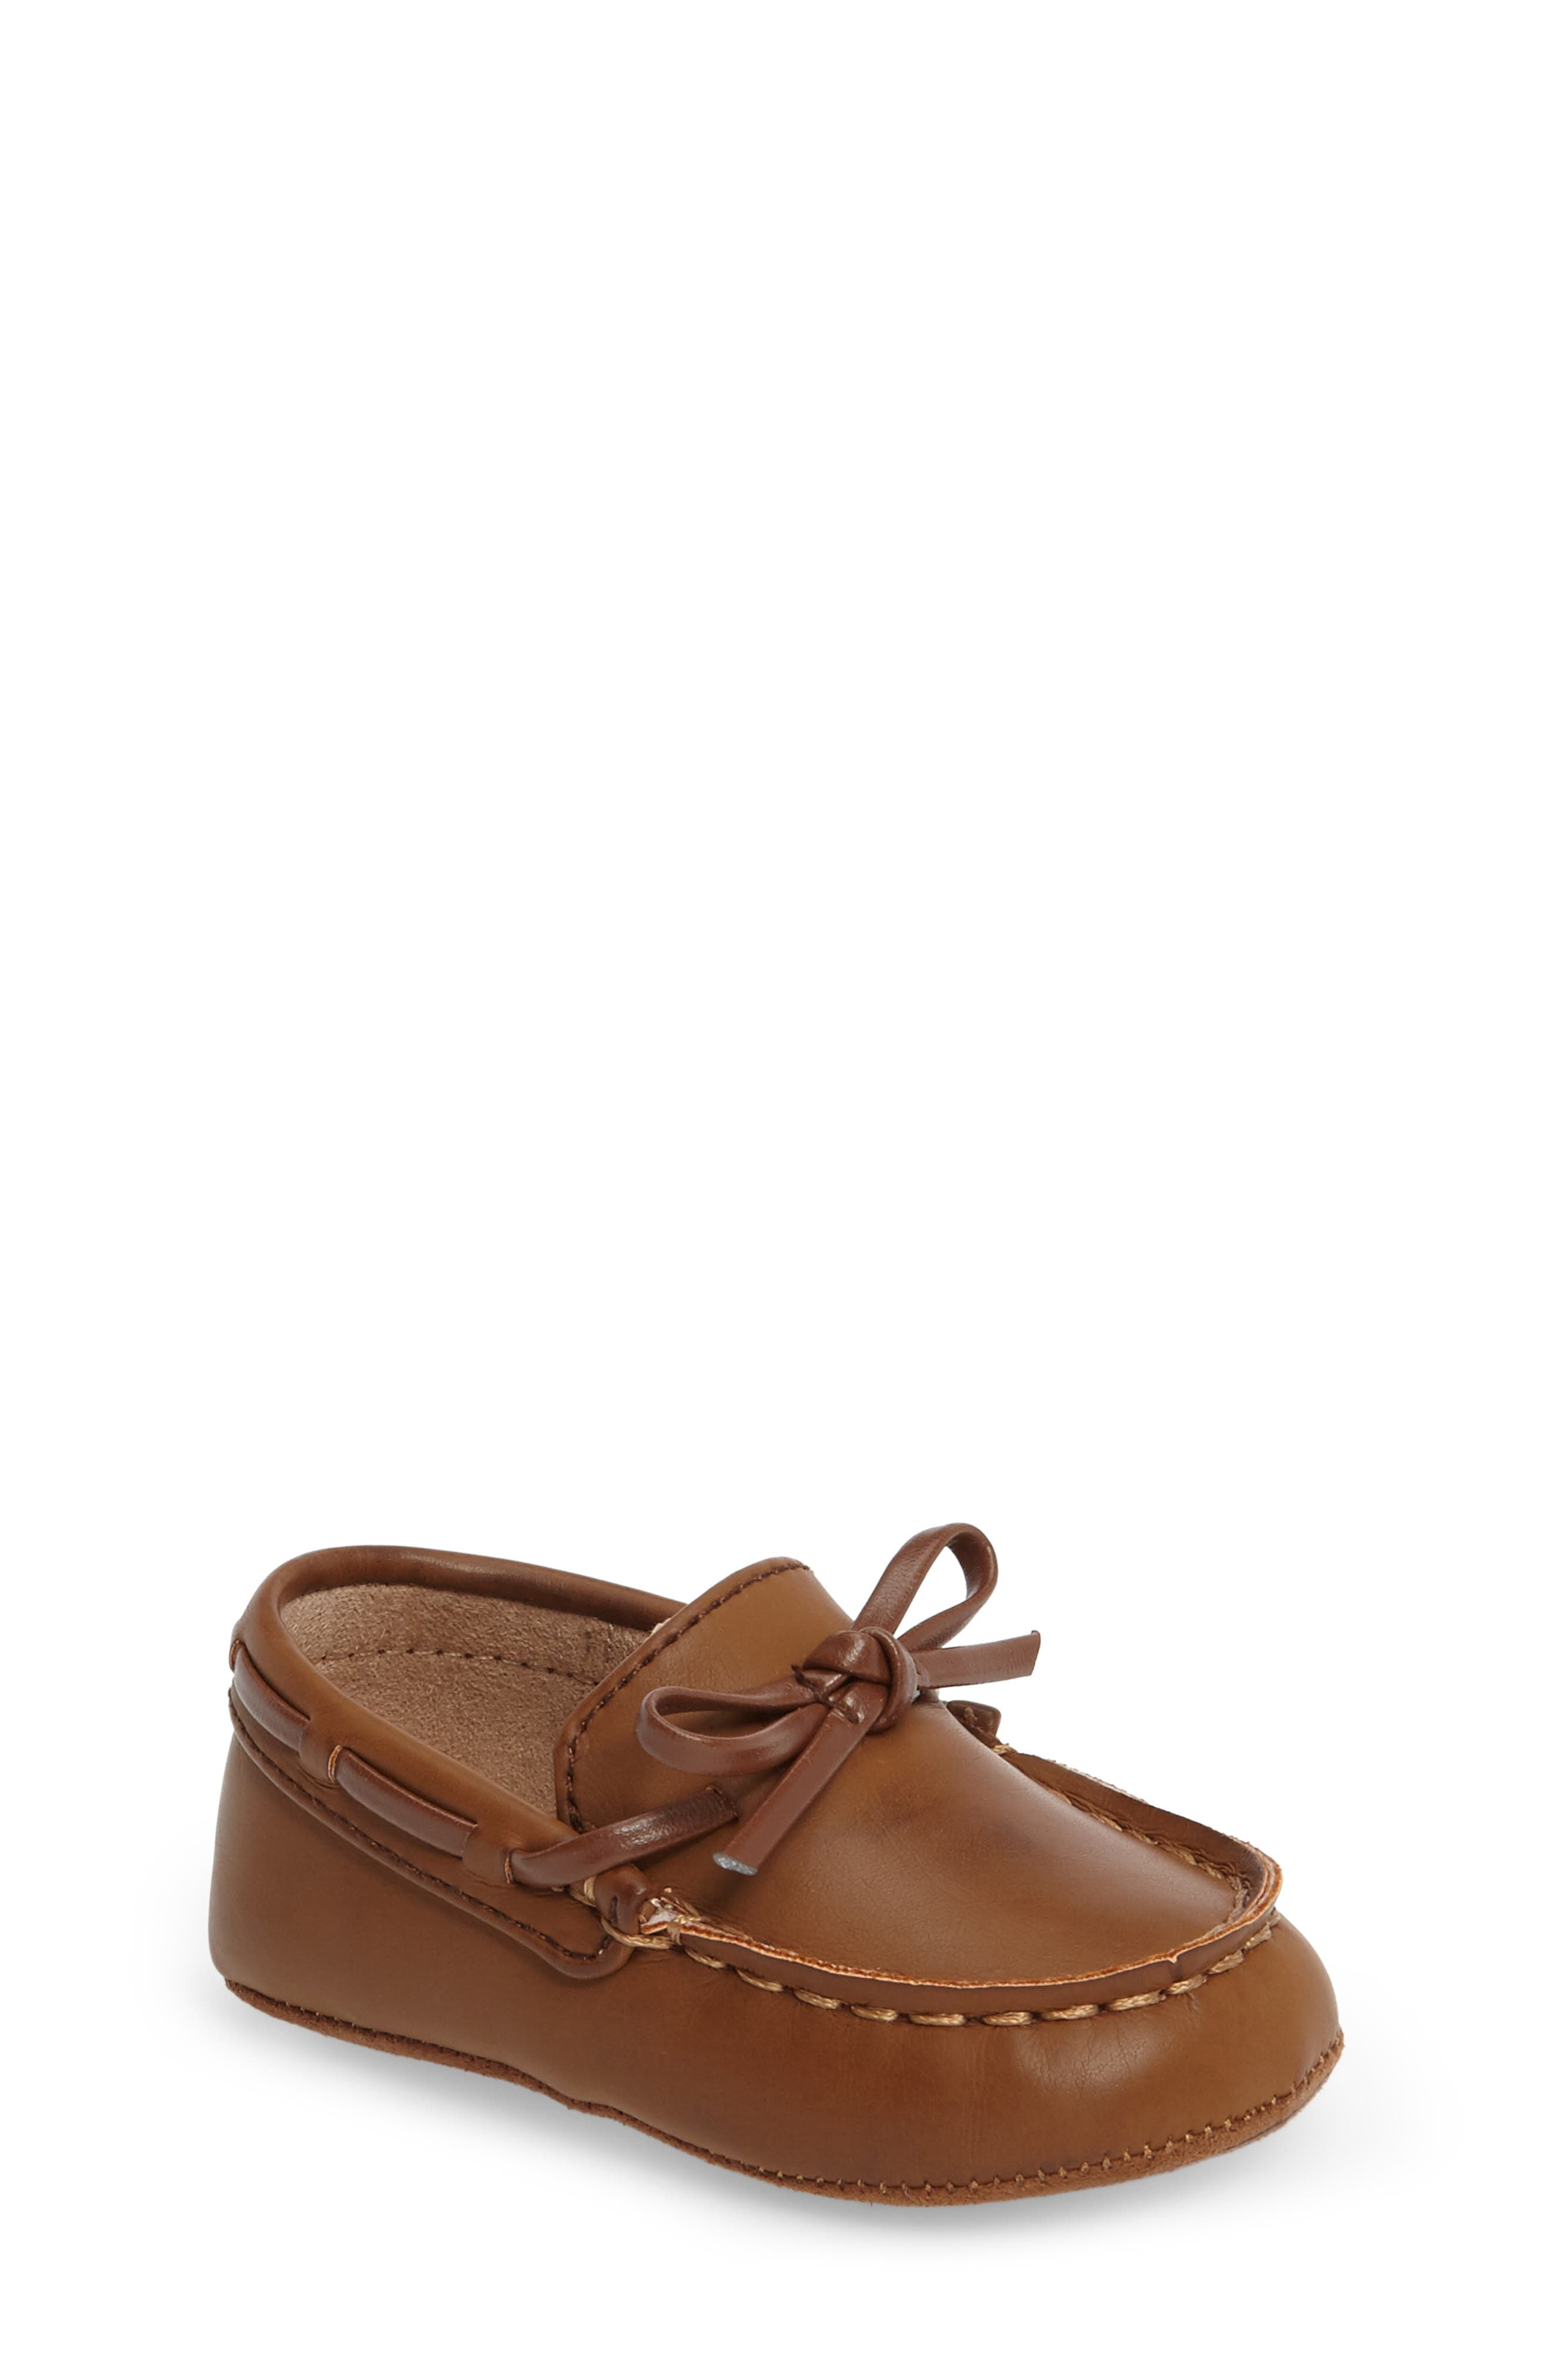 KENNETH COLE NEW YORK Baby Boat Shoe, Main, color, CARAMEL